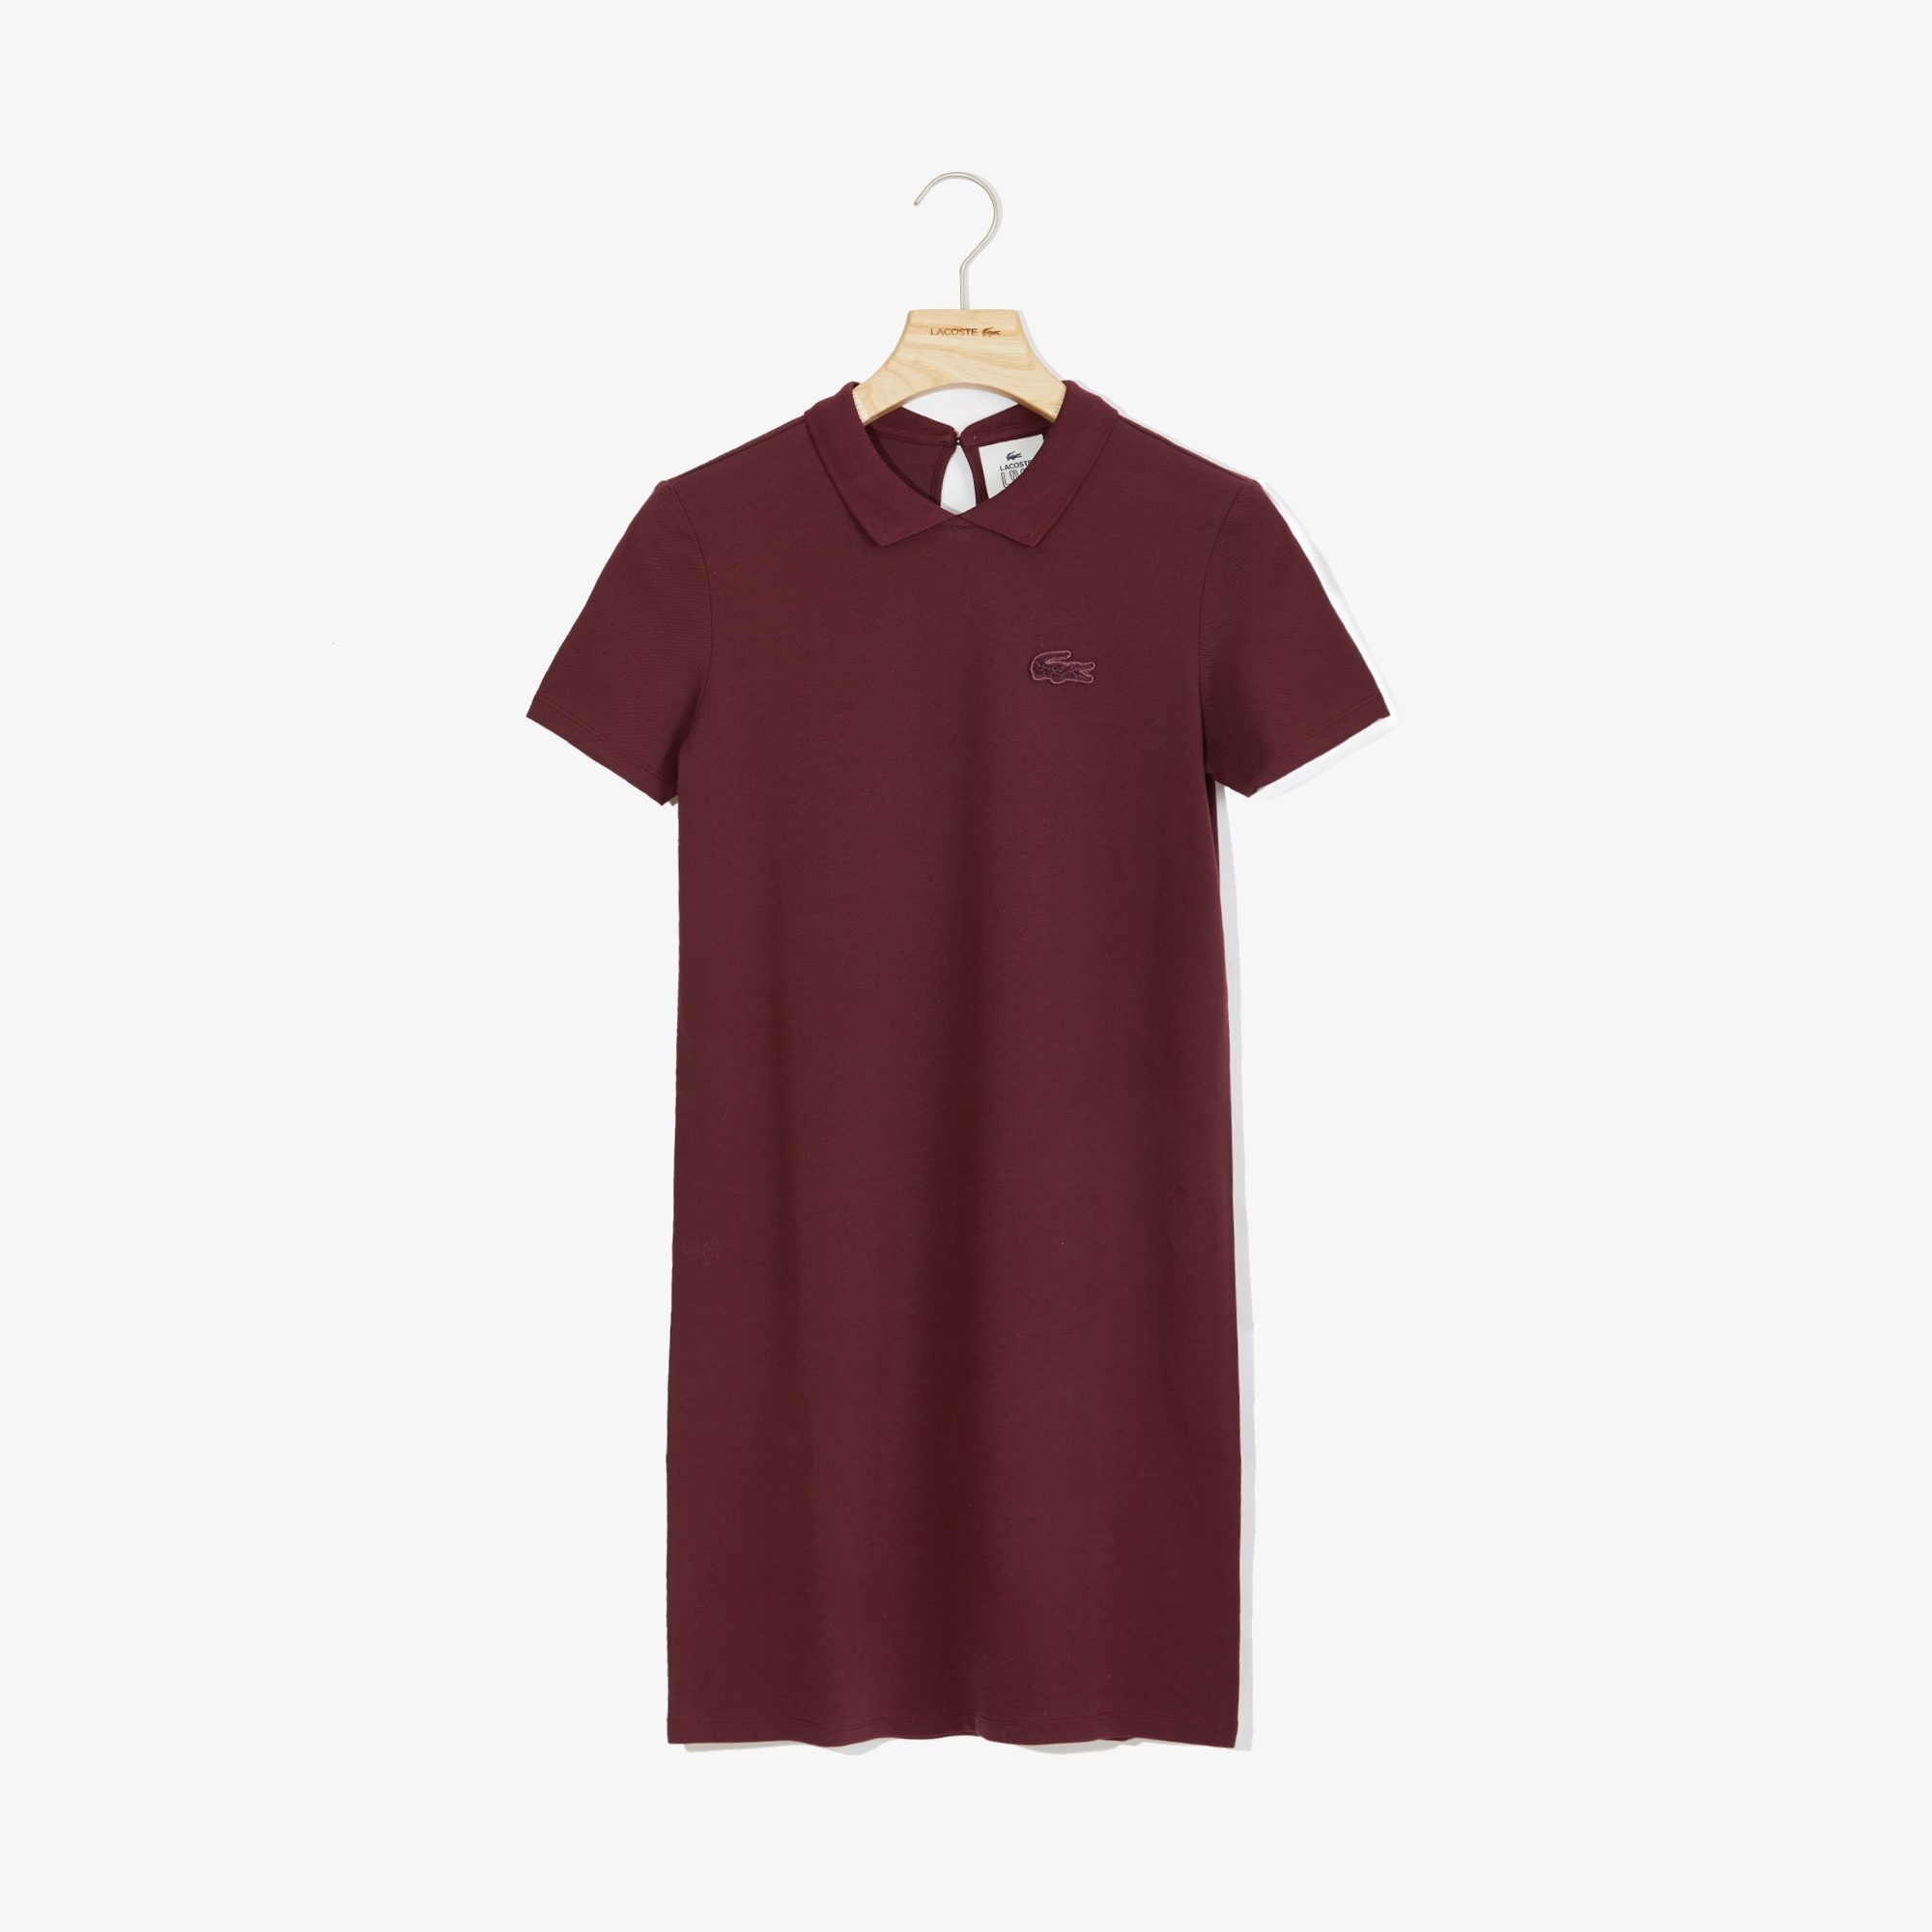 Women's Lacoste LIVE Stretch Piqué Velvet Crocodile Polo Dress